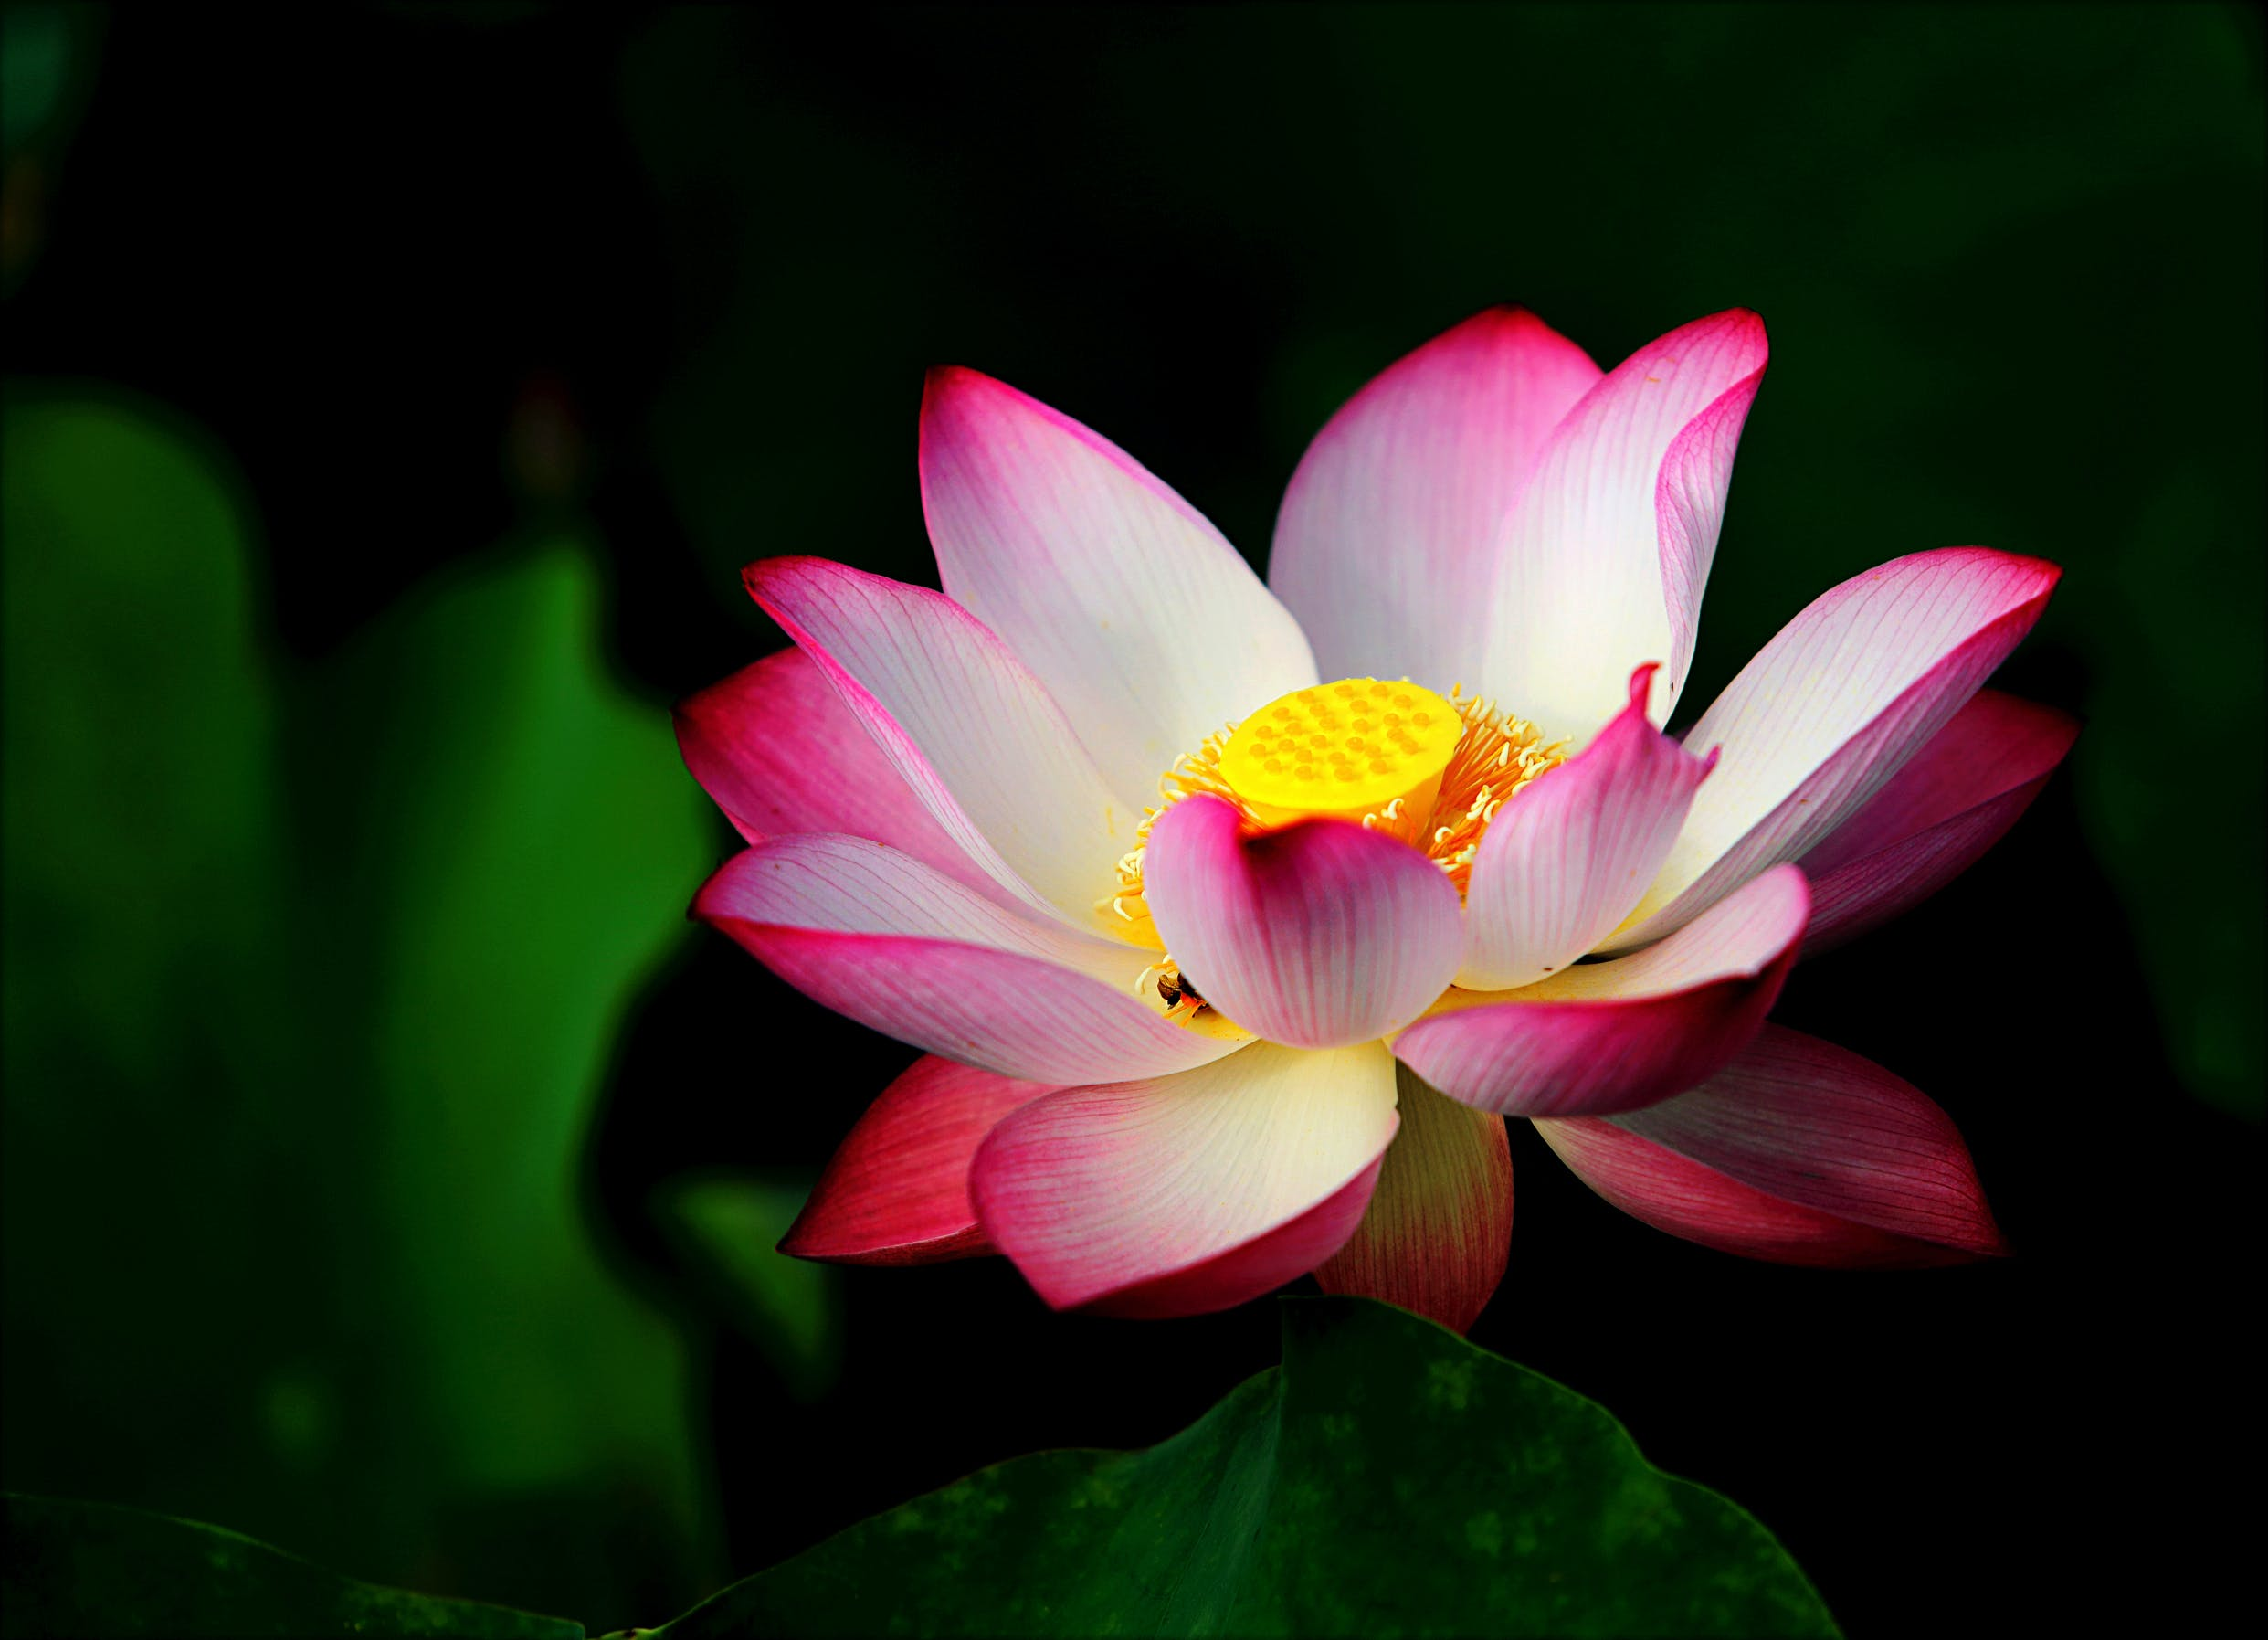 Pink Lotus in Bloom Selective Focus Photo